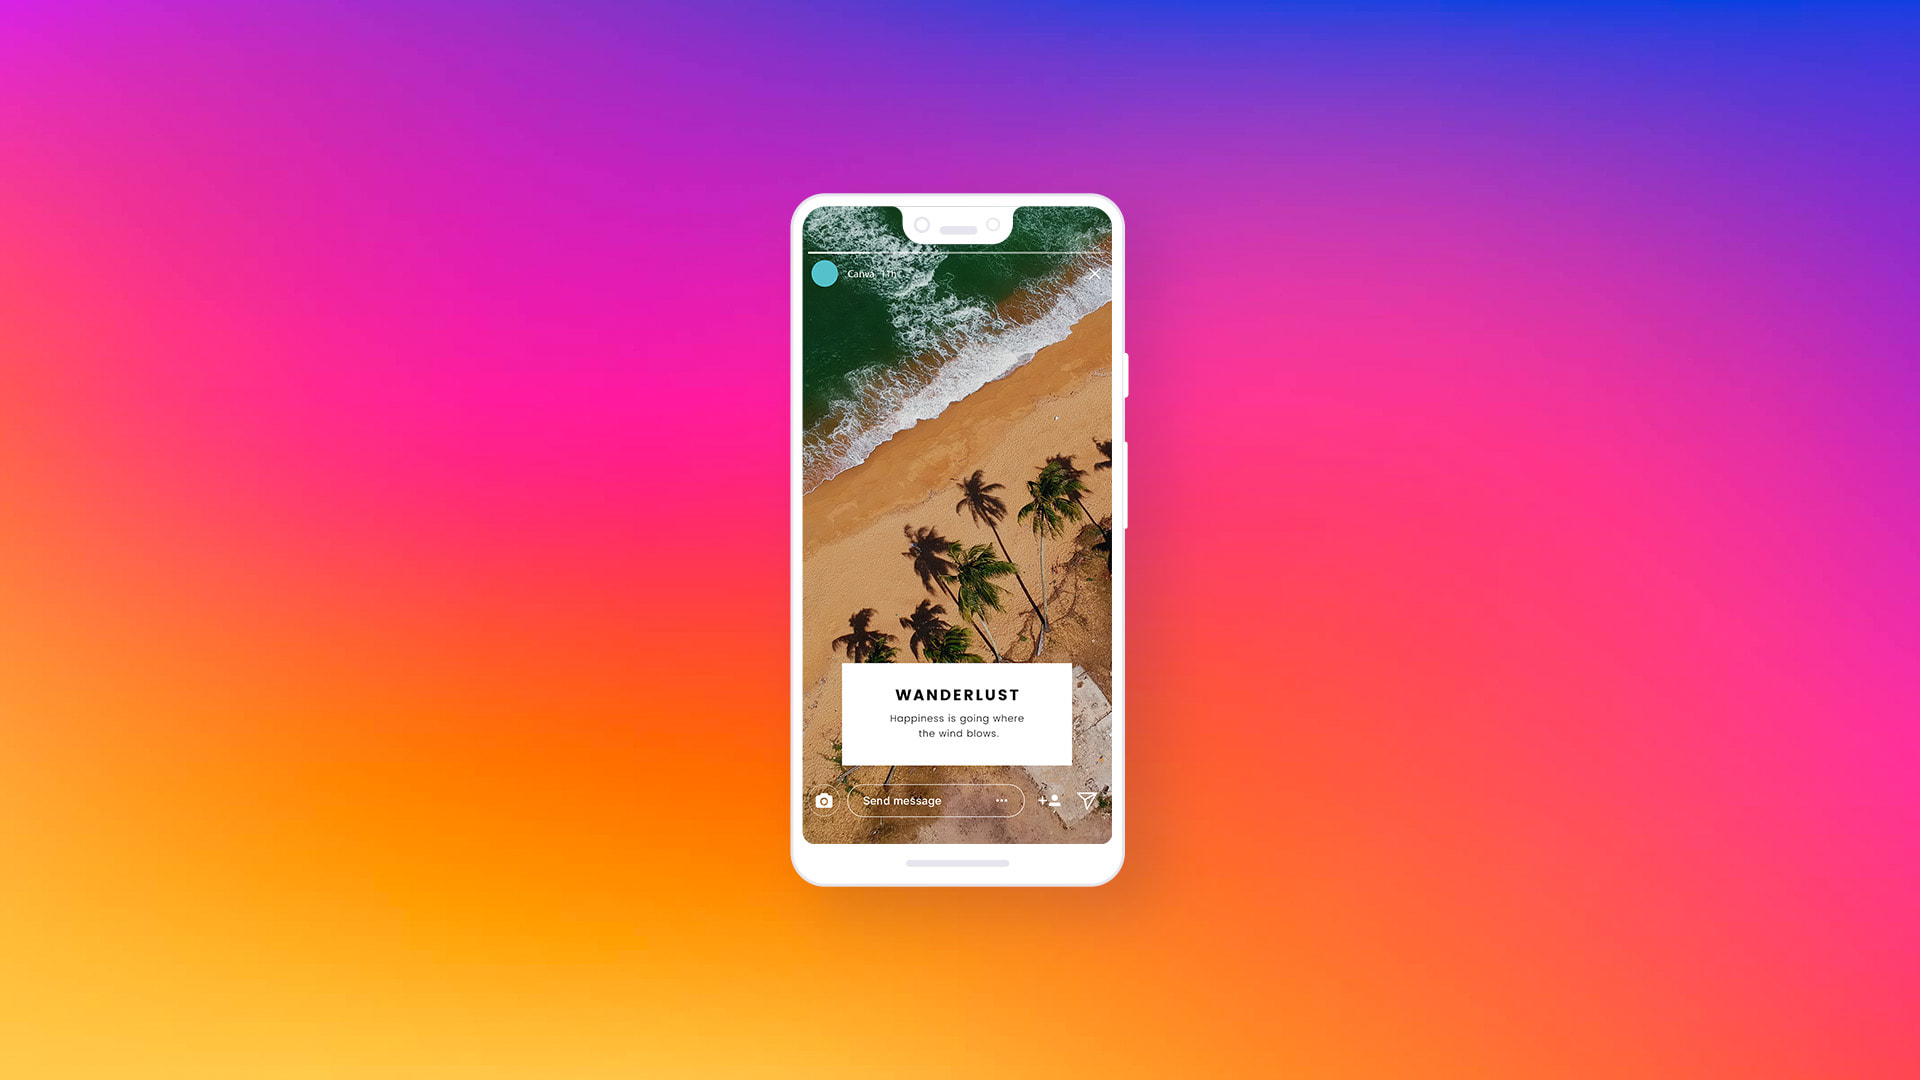 A complete guide to creating an Instagram Story featured image